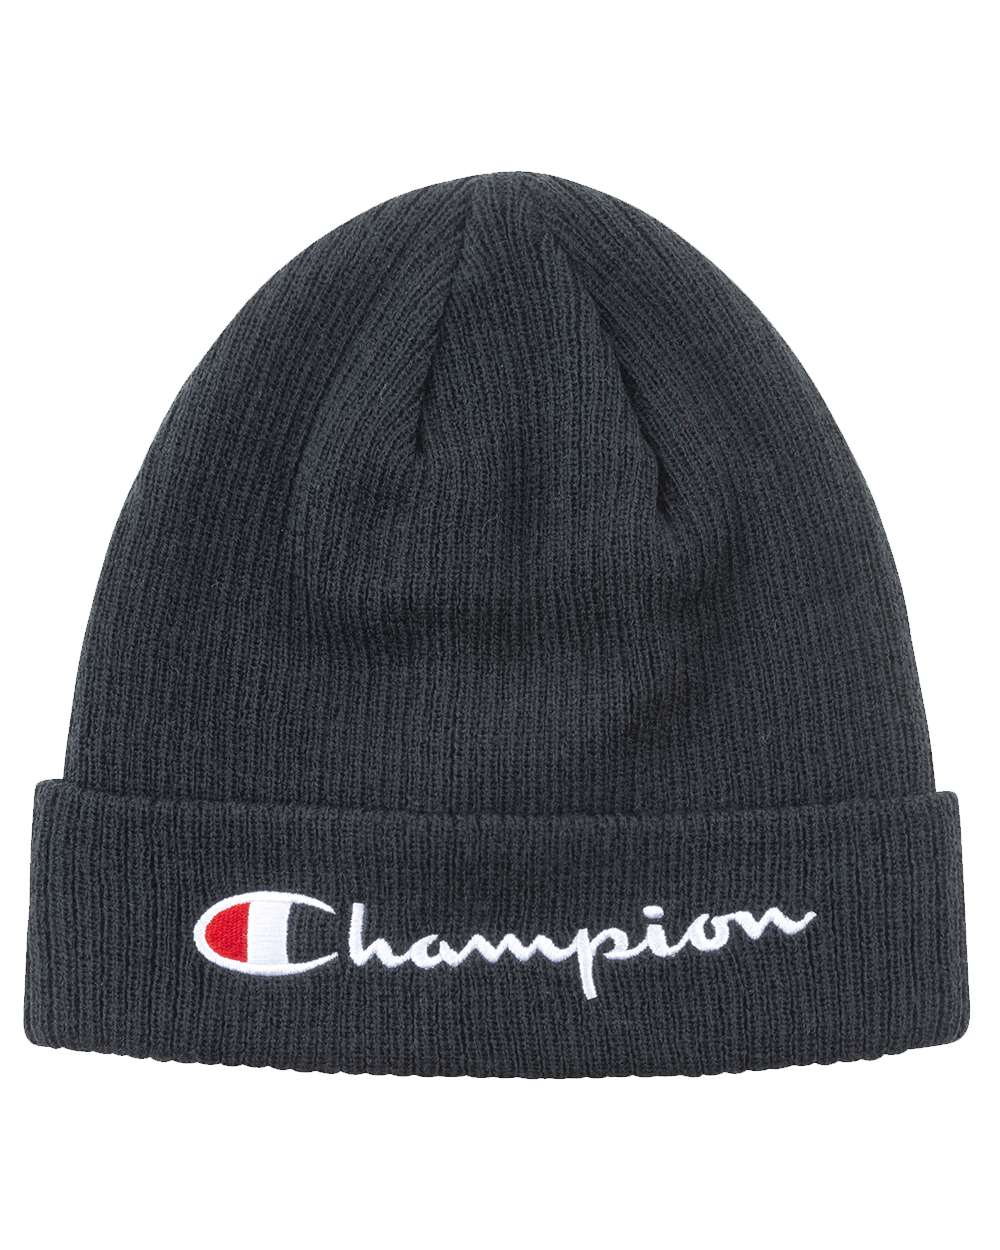 Champion CH2072 - Limited Edition Pivot 2.0 Cuffed Beanie